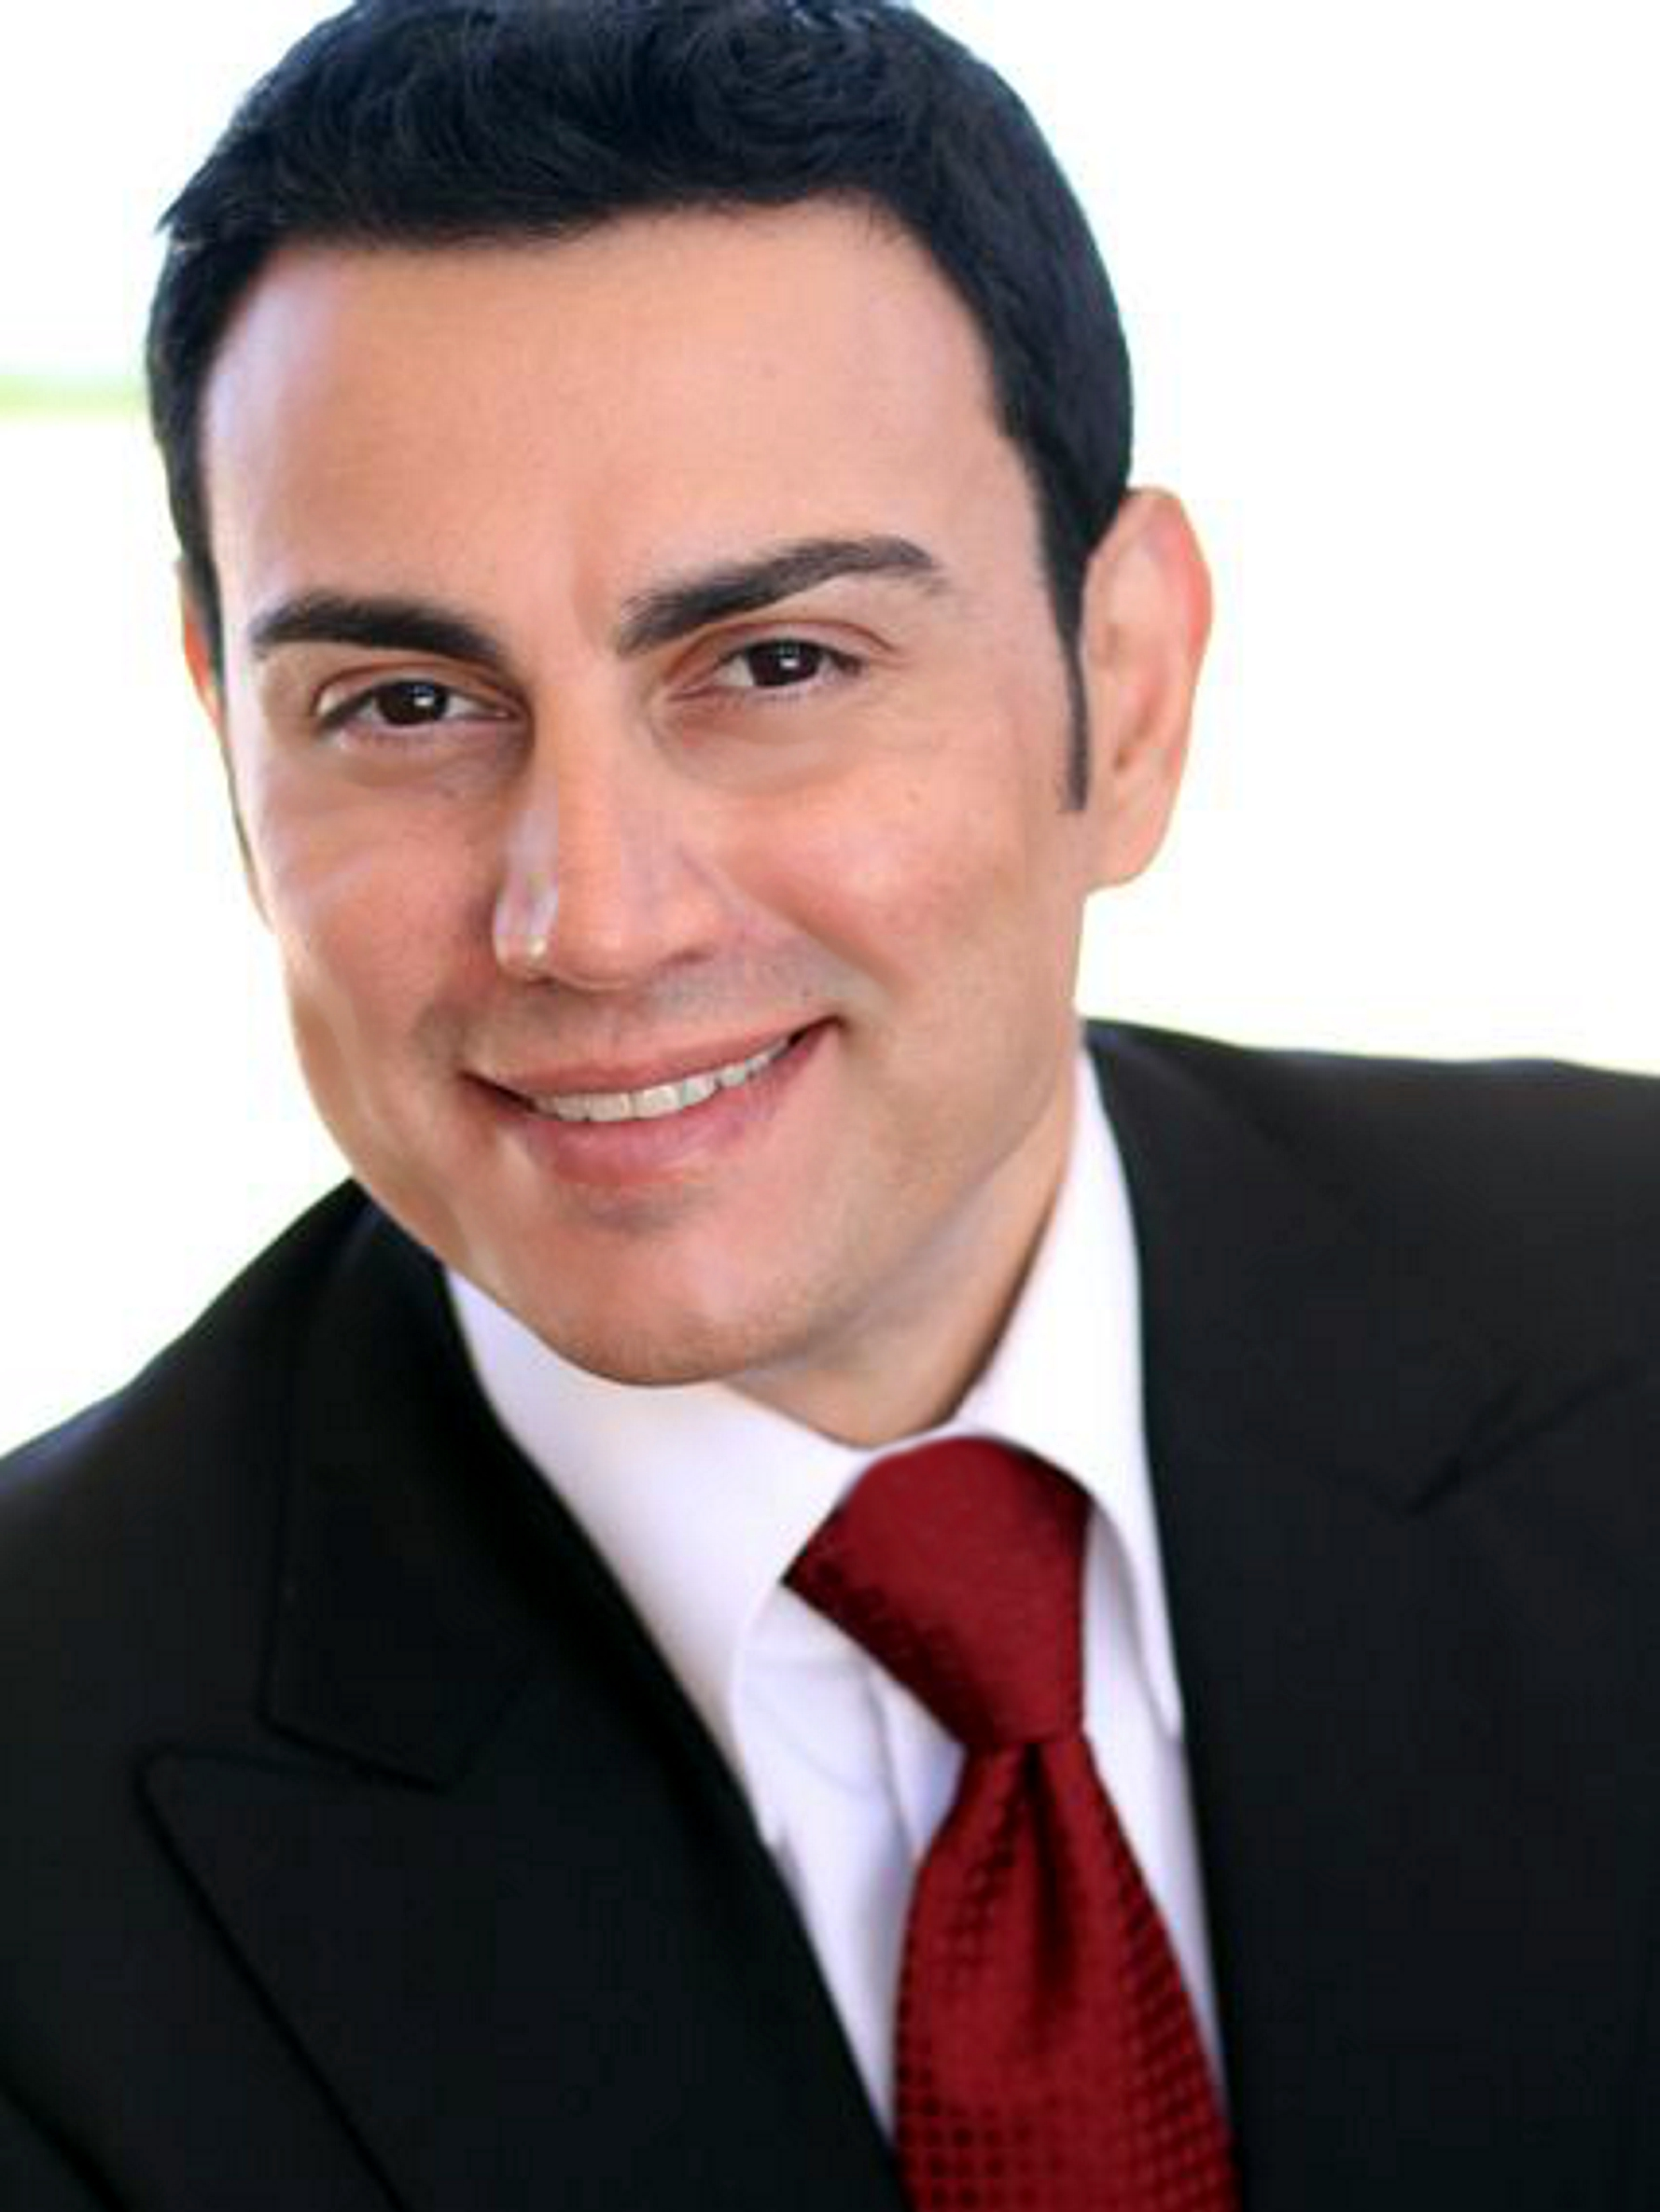 Heir of The Ghassanid Dynasty, His Imperial Royal Highness Prince Gharios Is The 2nd G.O.D. Awards' Noble Man of The Year